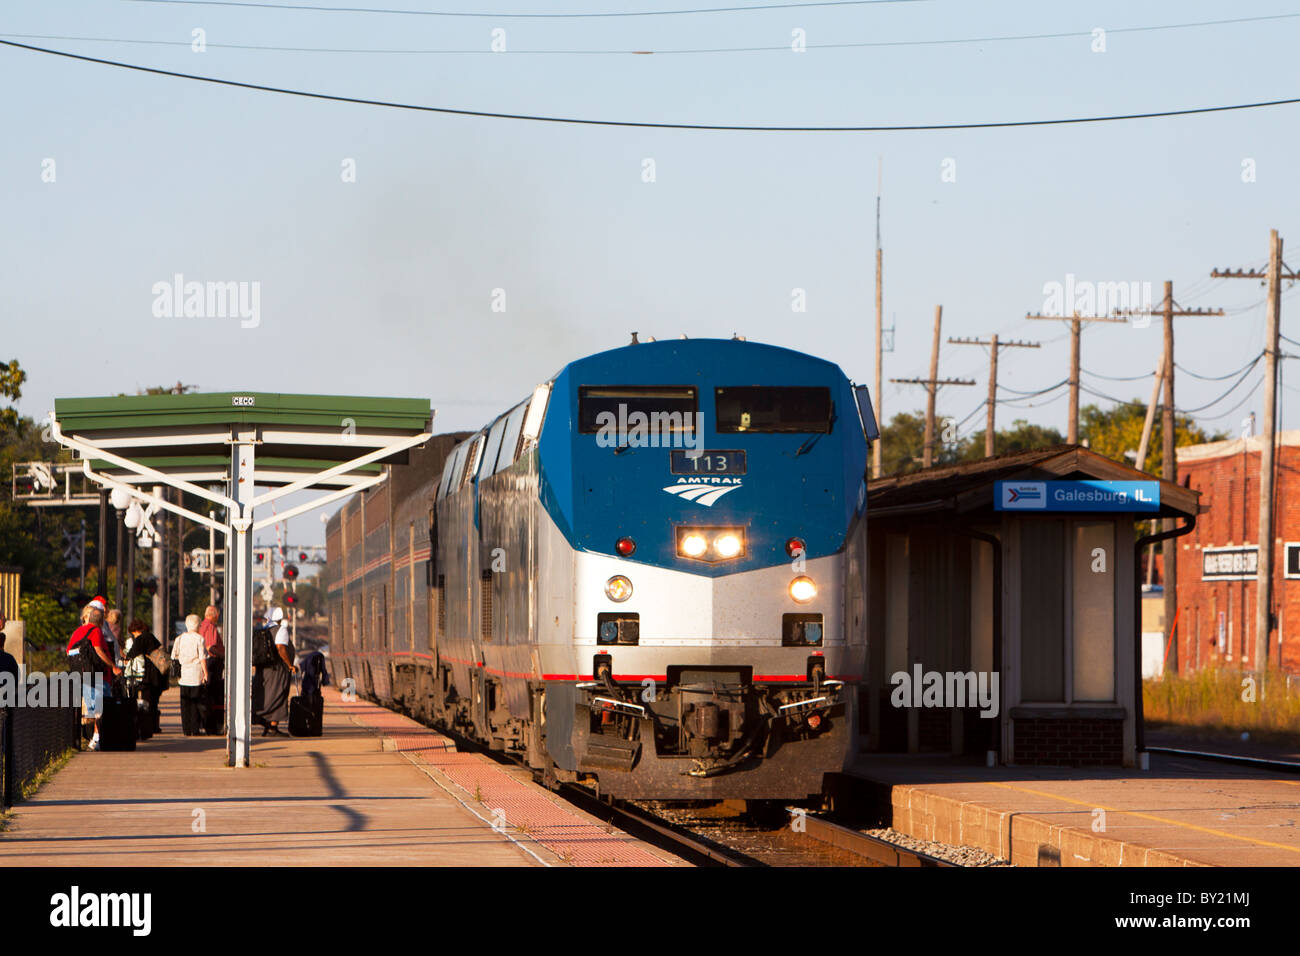 A long distance Amtrak train slows to a stop at the Galesburg, IL depot. - Stock Image